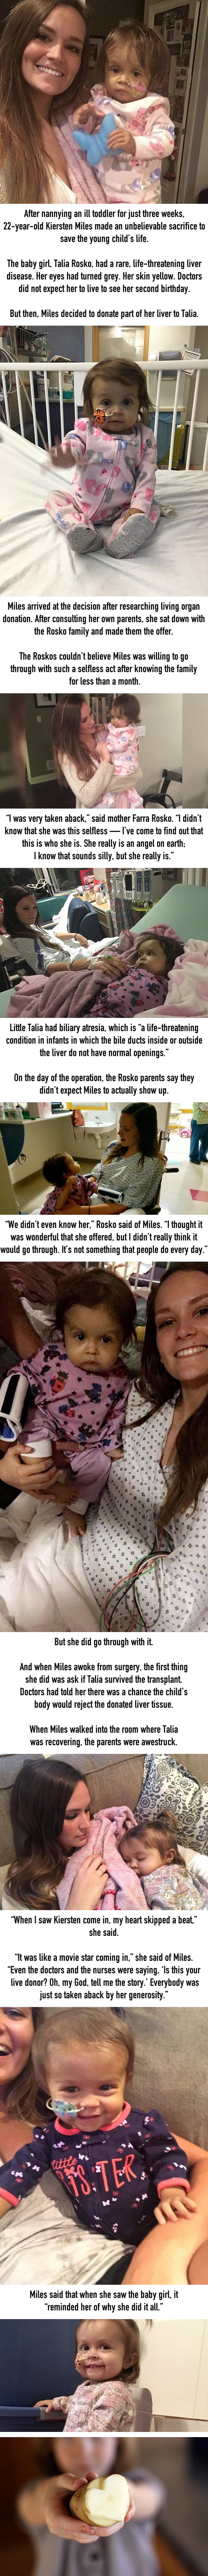 A nanny made an incredible sacrifice to save a sick toddler